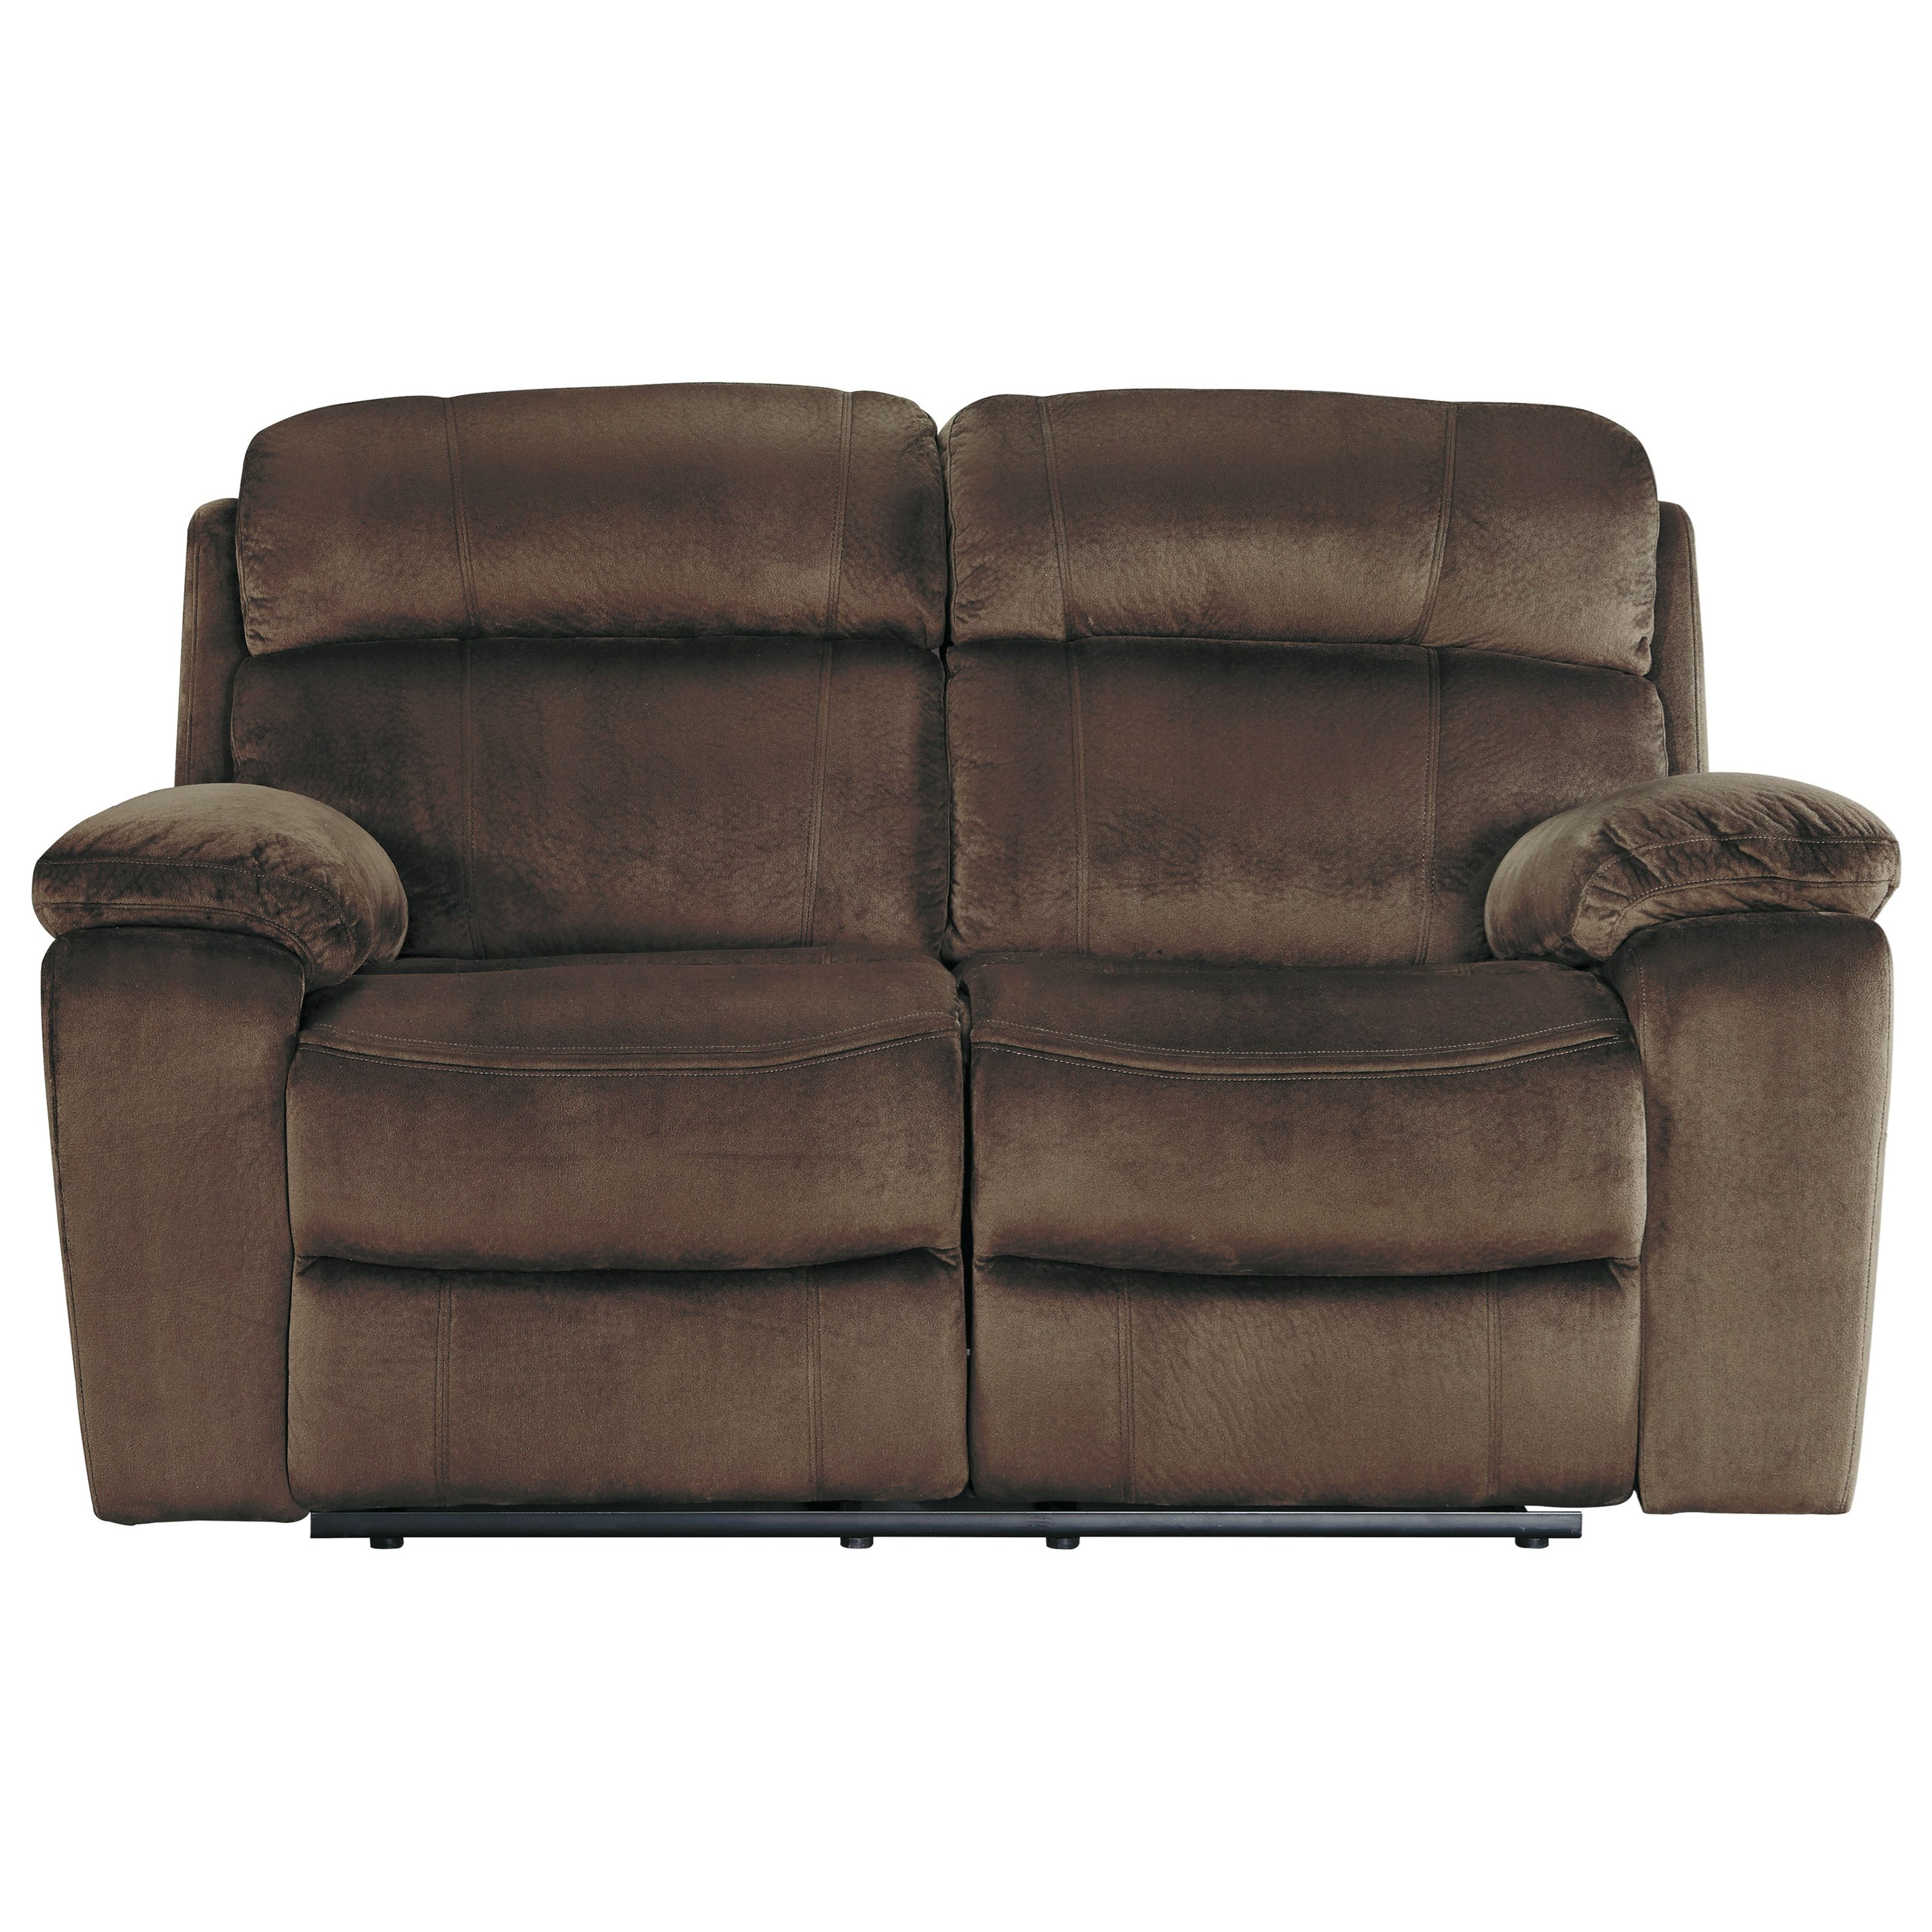 Uhland Power Reclining Loveseat w/ Adj. Headrest by Ashley Furniture Signature Design at Del Sol Furniture